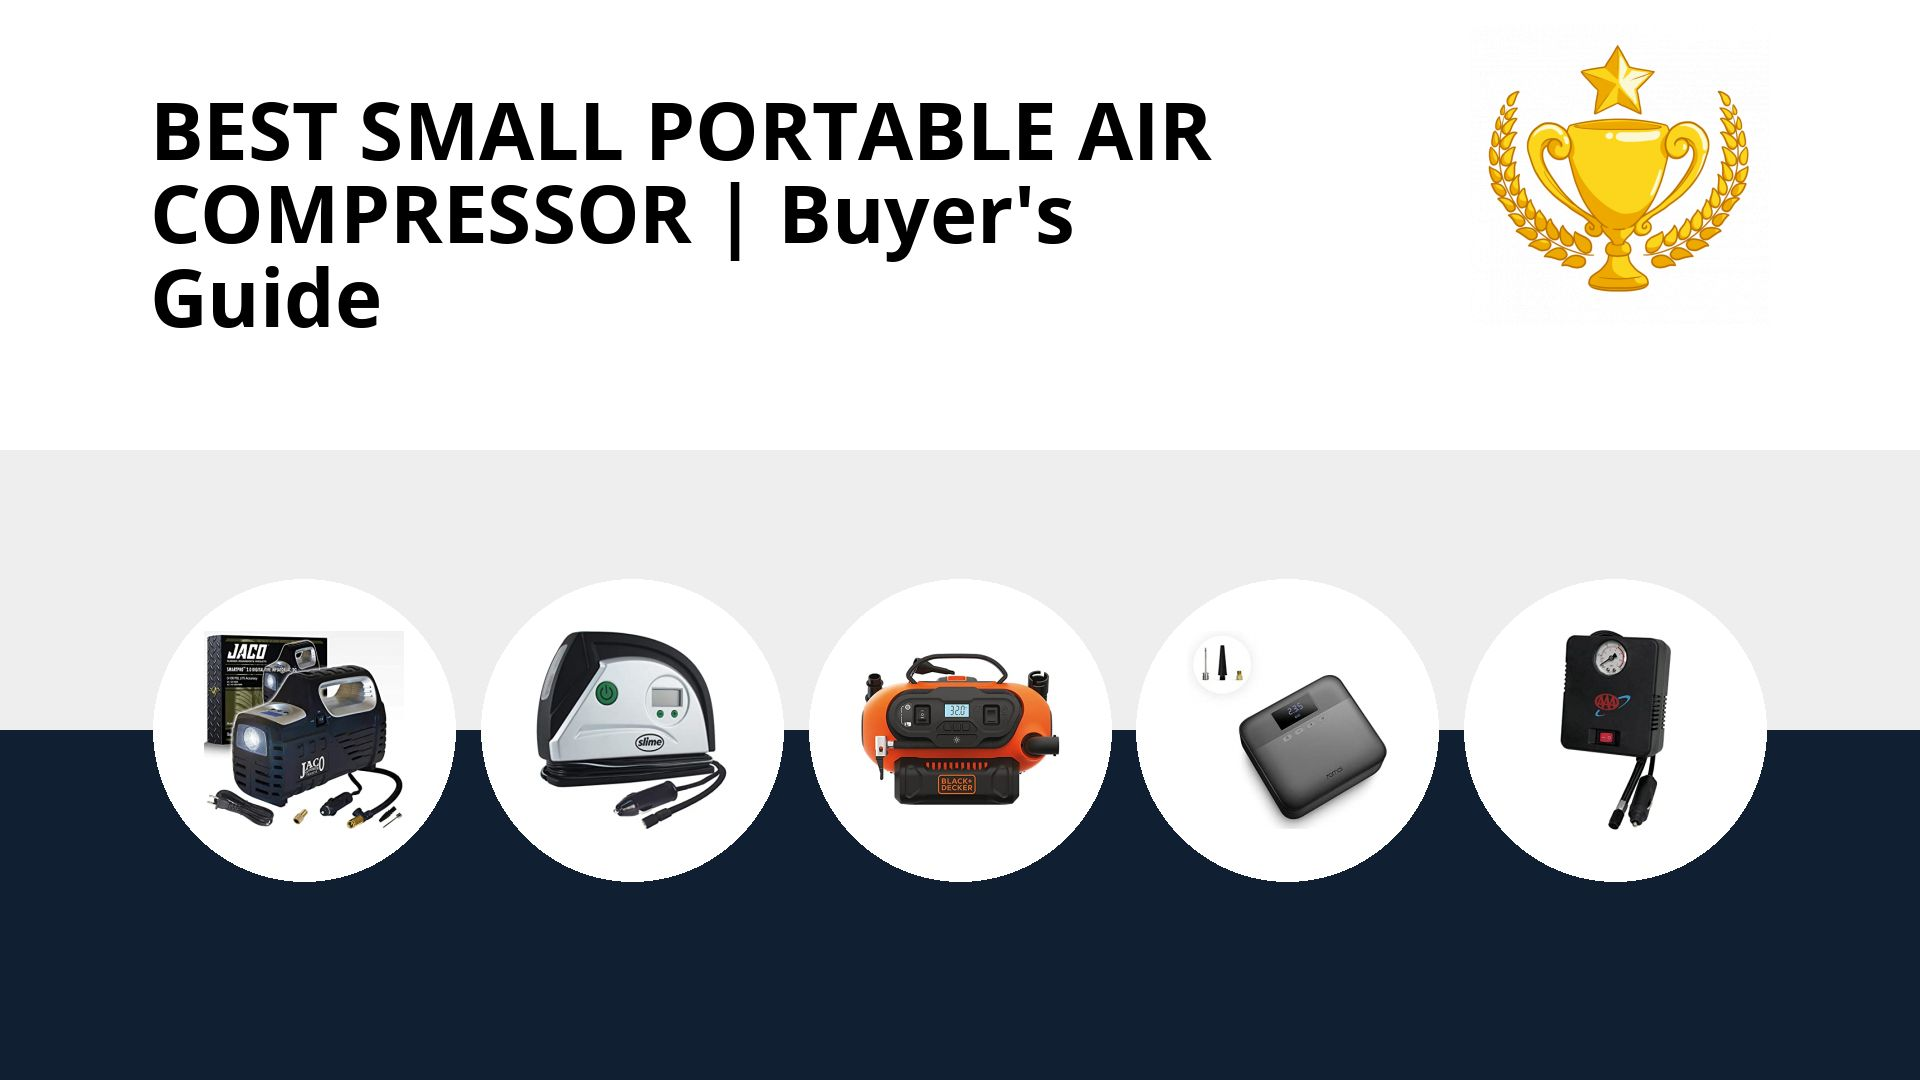 Best Small Portable Air Compressor: image